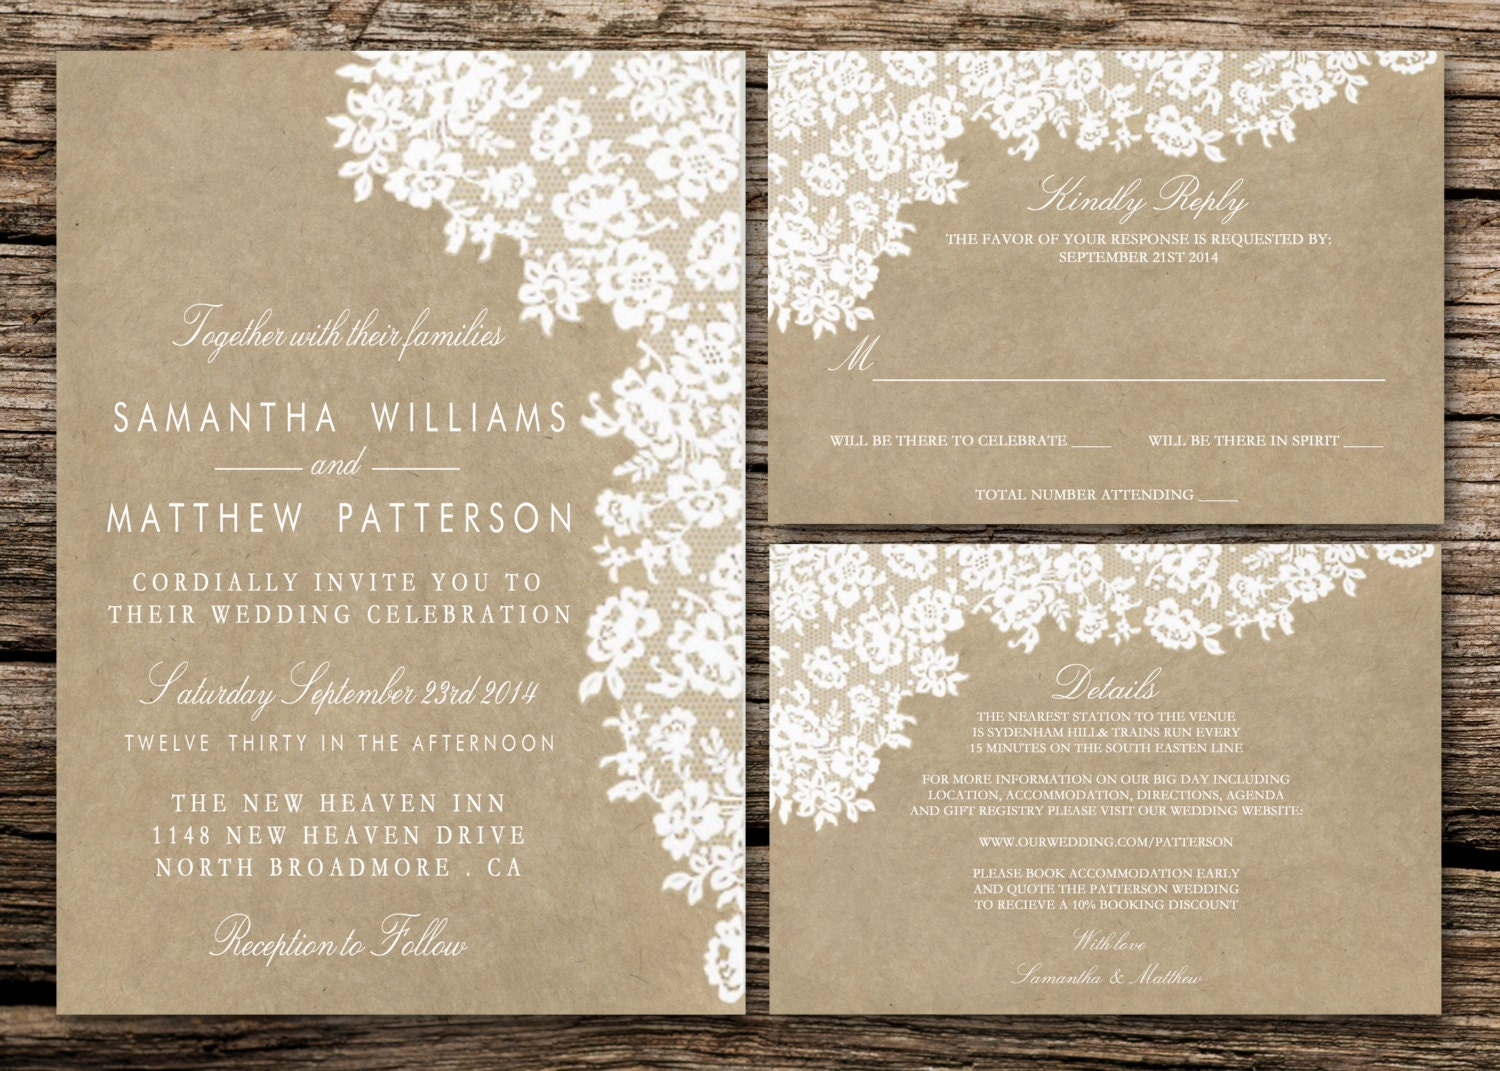 Printable Wedding Invitation Set Invitation RSVP Card | Etsy